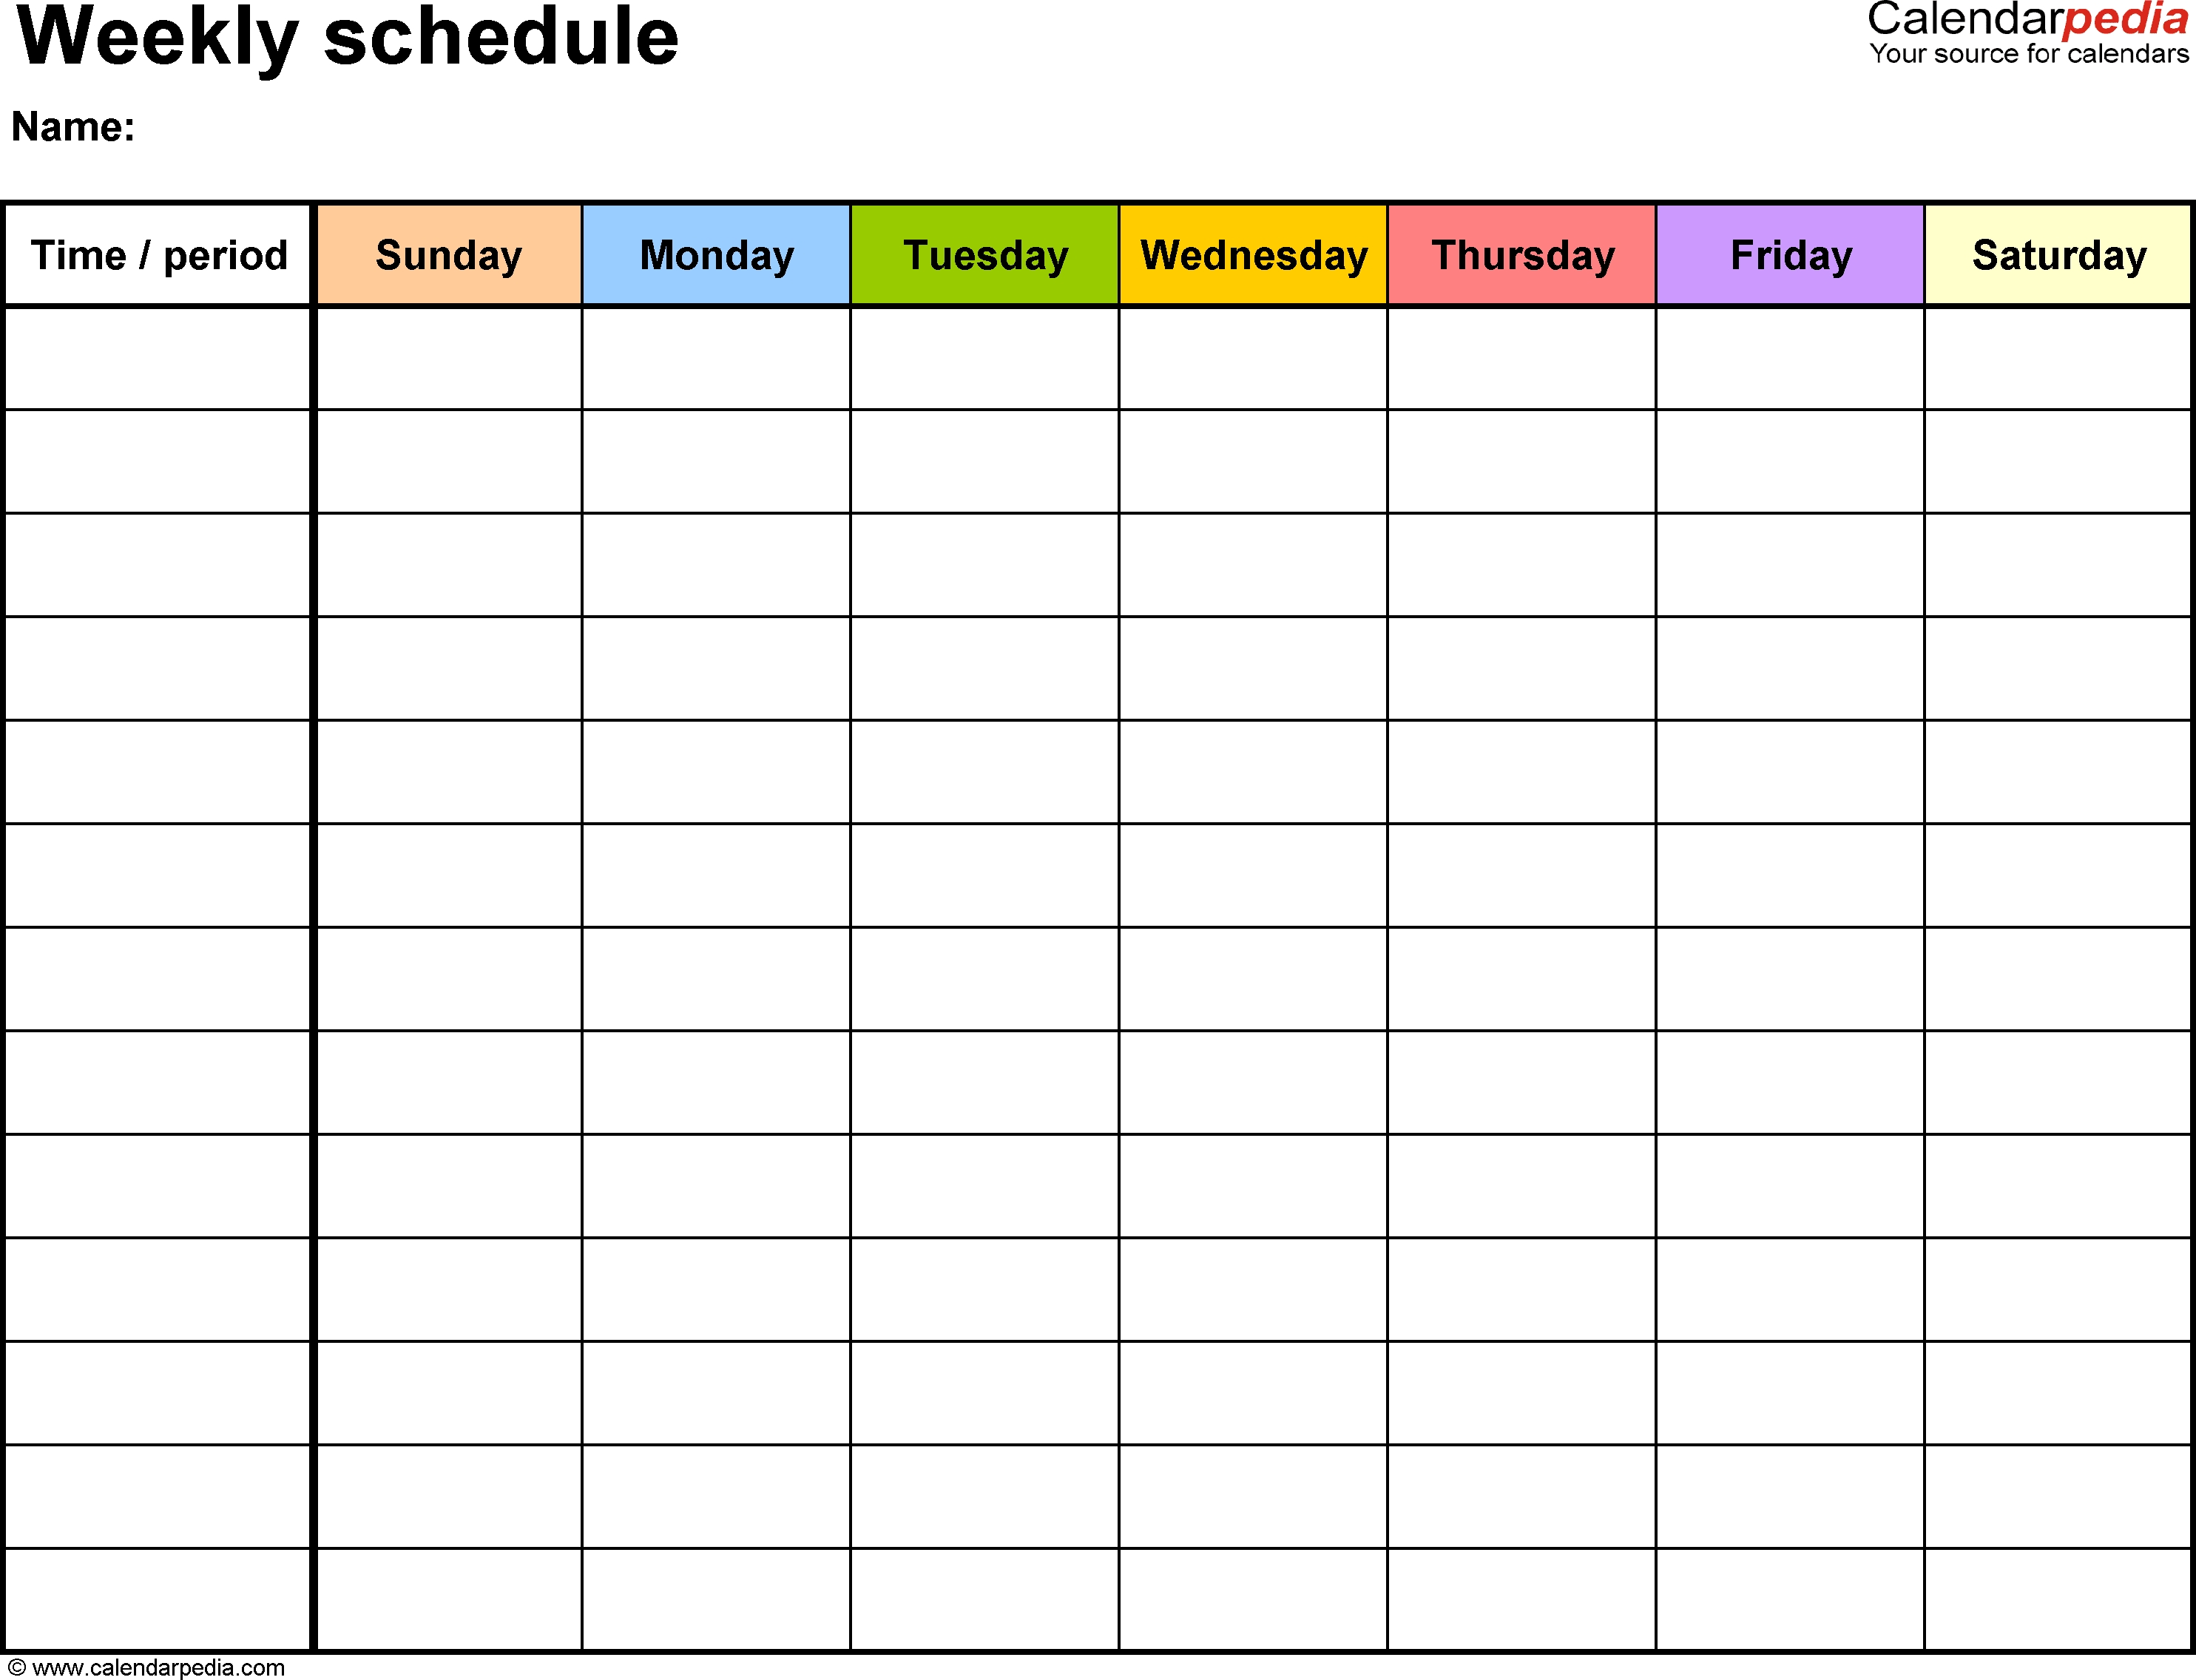 Free Weekly Schedule Templates For Excel - 18 Templates inside Free One Month Schedule Templates